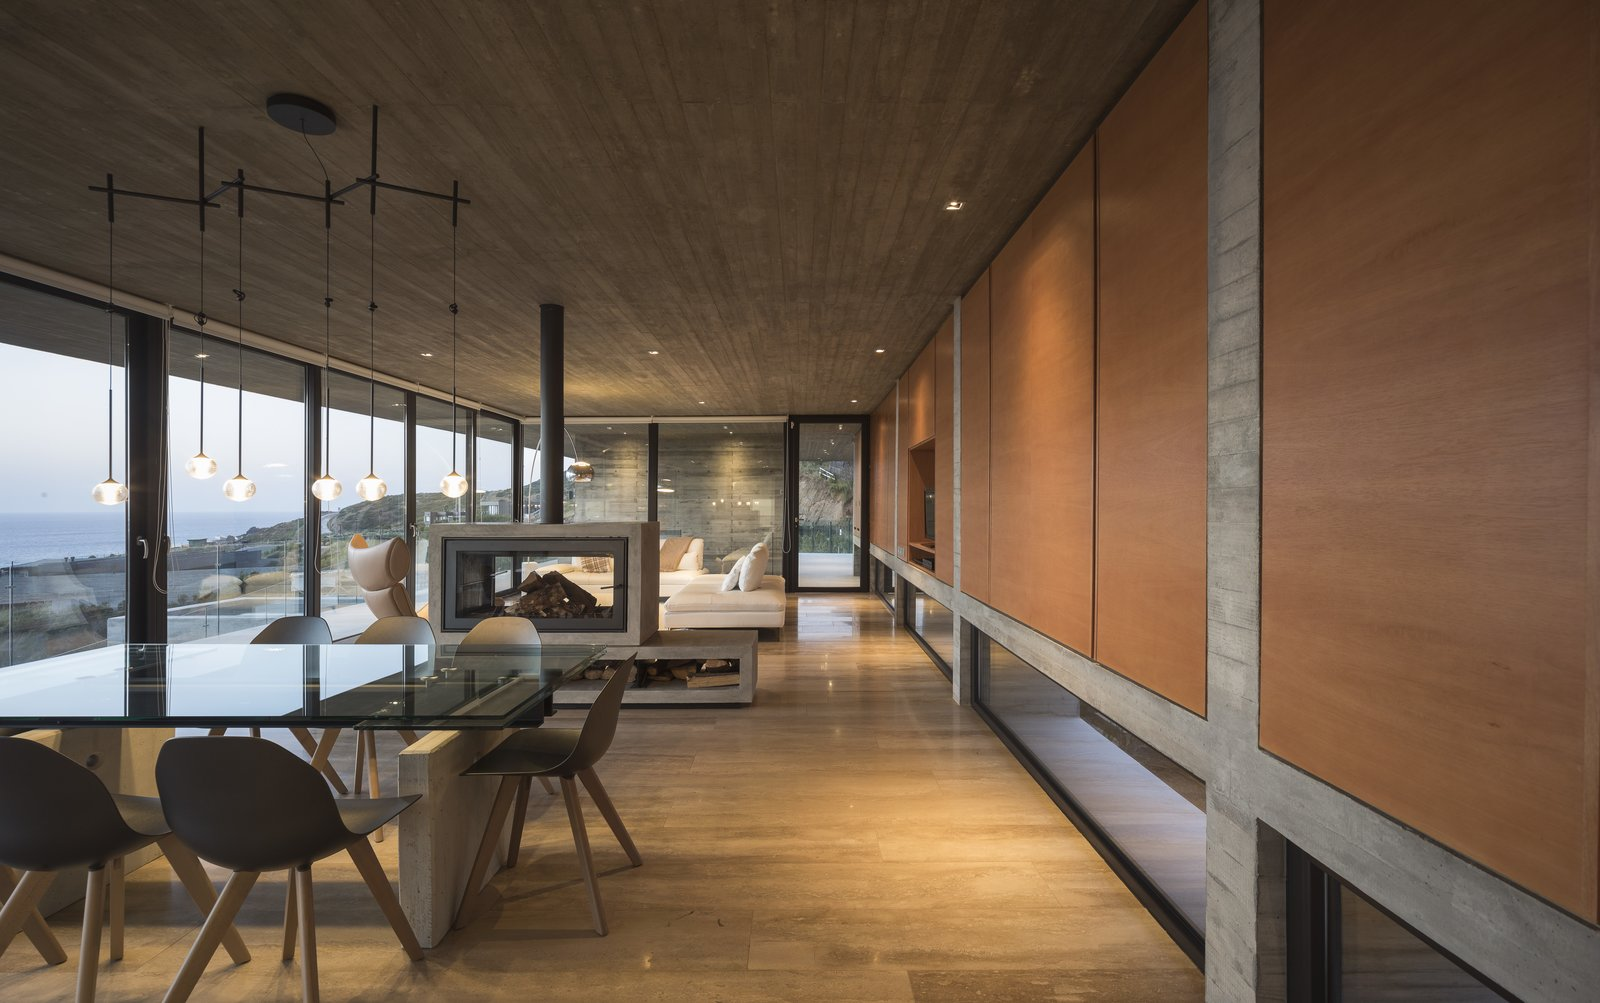 Dining Room, Recessed Lighting, Chair, Two-Sided Fireplace, and Table The living room, dining area, and kitchen have been designed as a single space within the main level.     Photo 6 of 14 in This Chilean Concrete Home Levitates Off a Coastal Slope